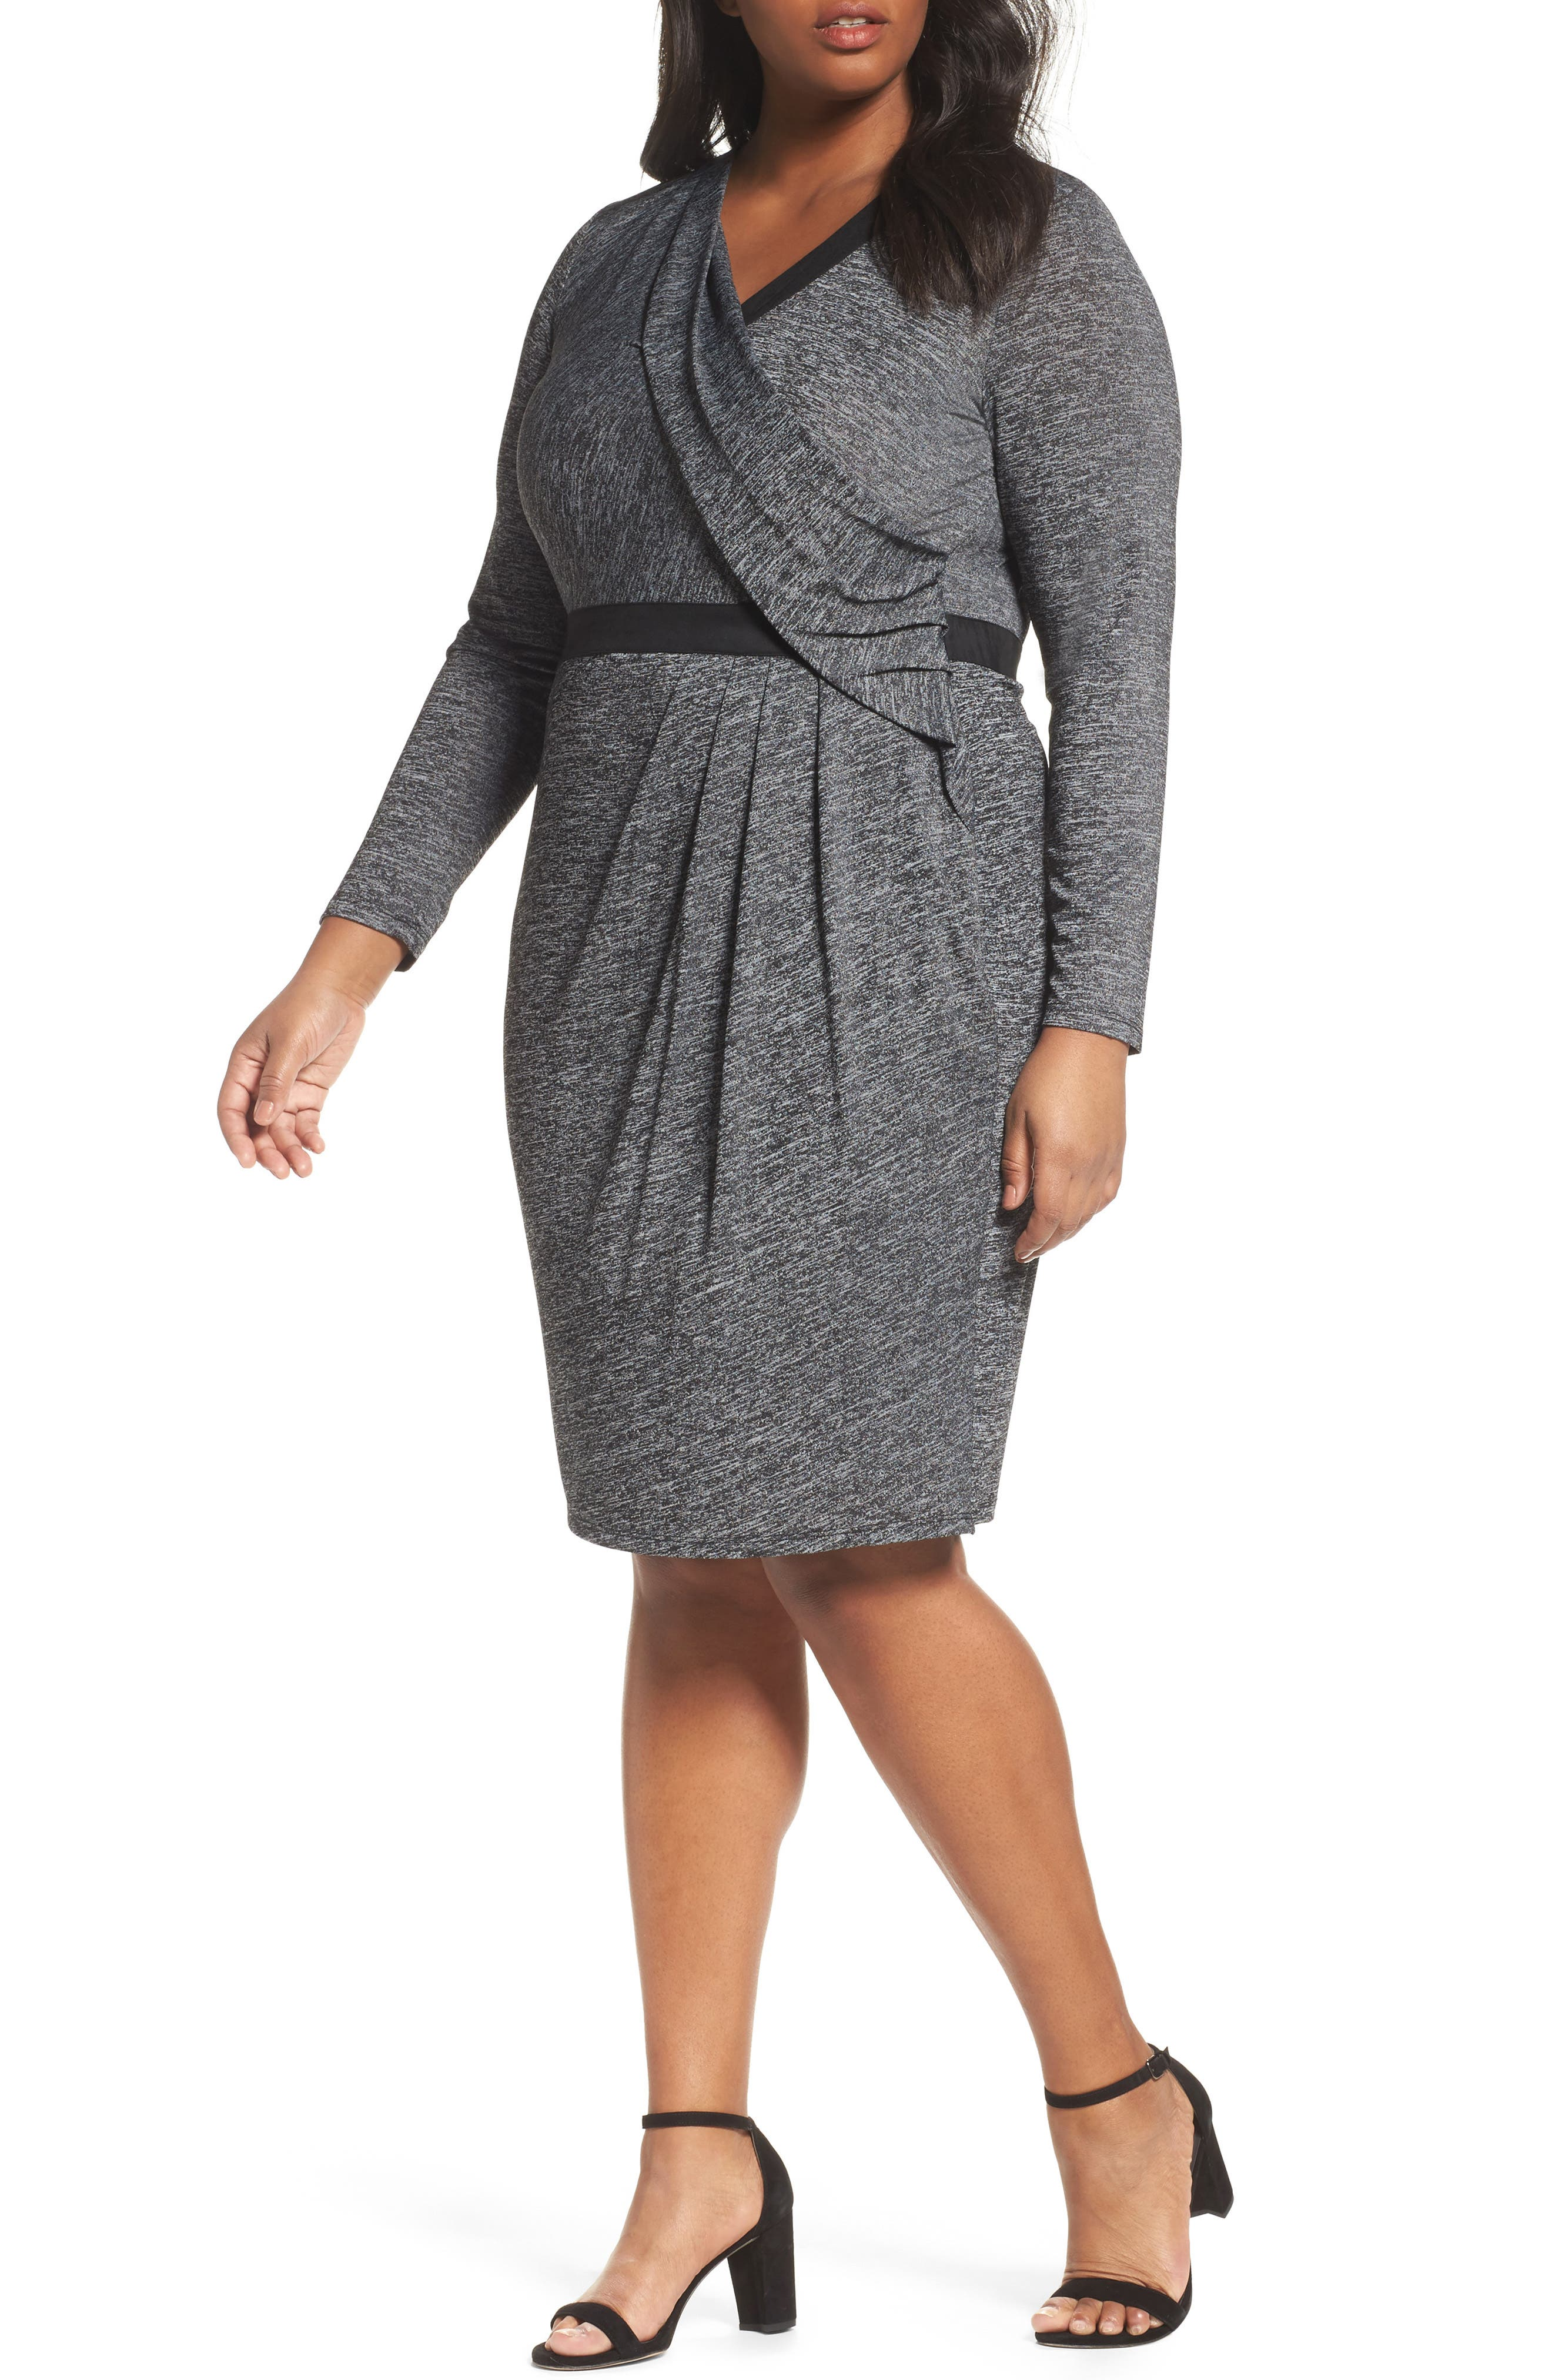 Adrianna Papell Knit Faux Wrap Dress (Plus Size)